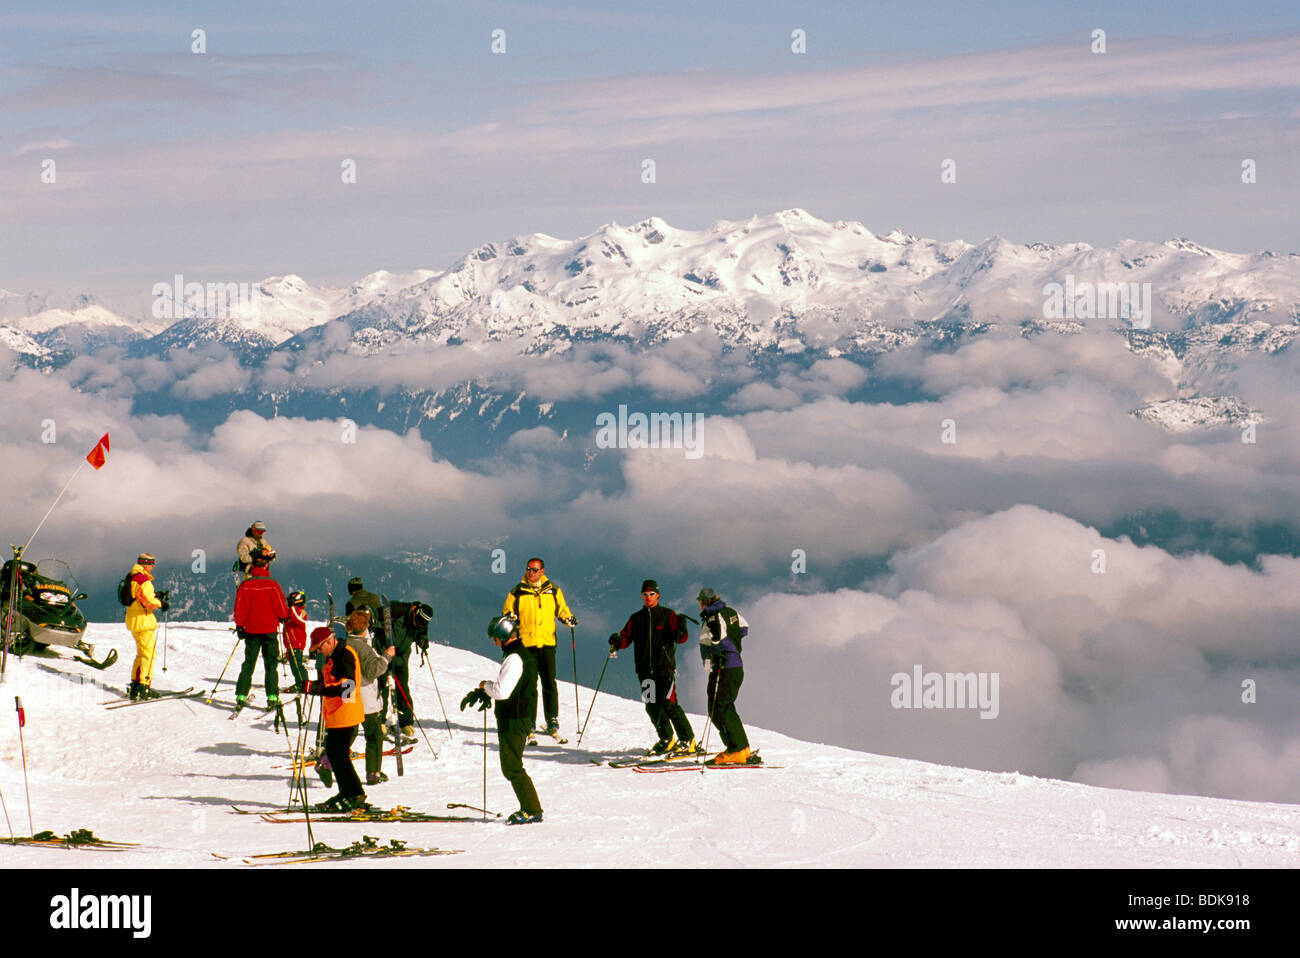 Group of Skiers downhill skiing on Blackcomb Mountain at Whistler Ski Resort in the 'Coast Mountains' of - Stock Image